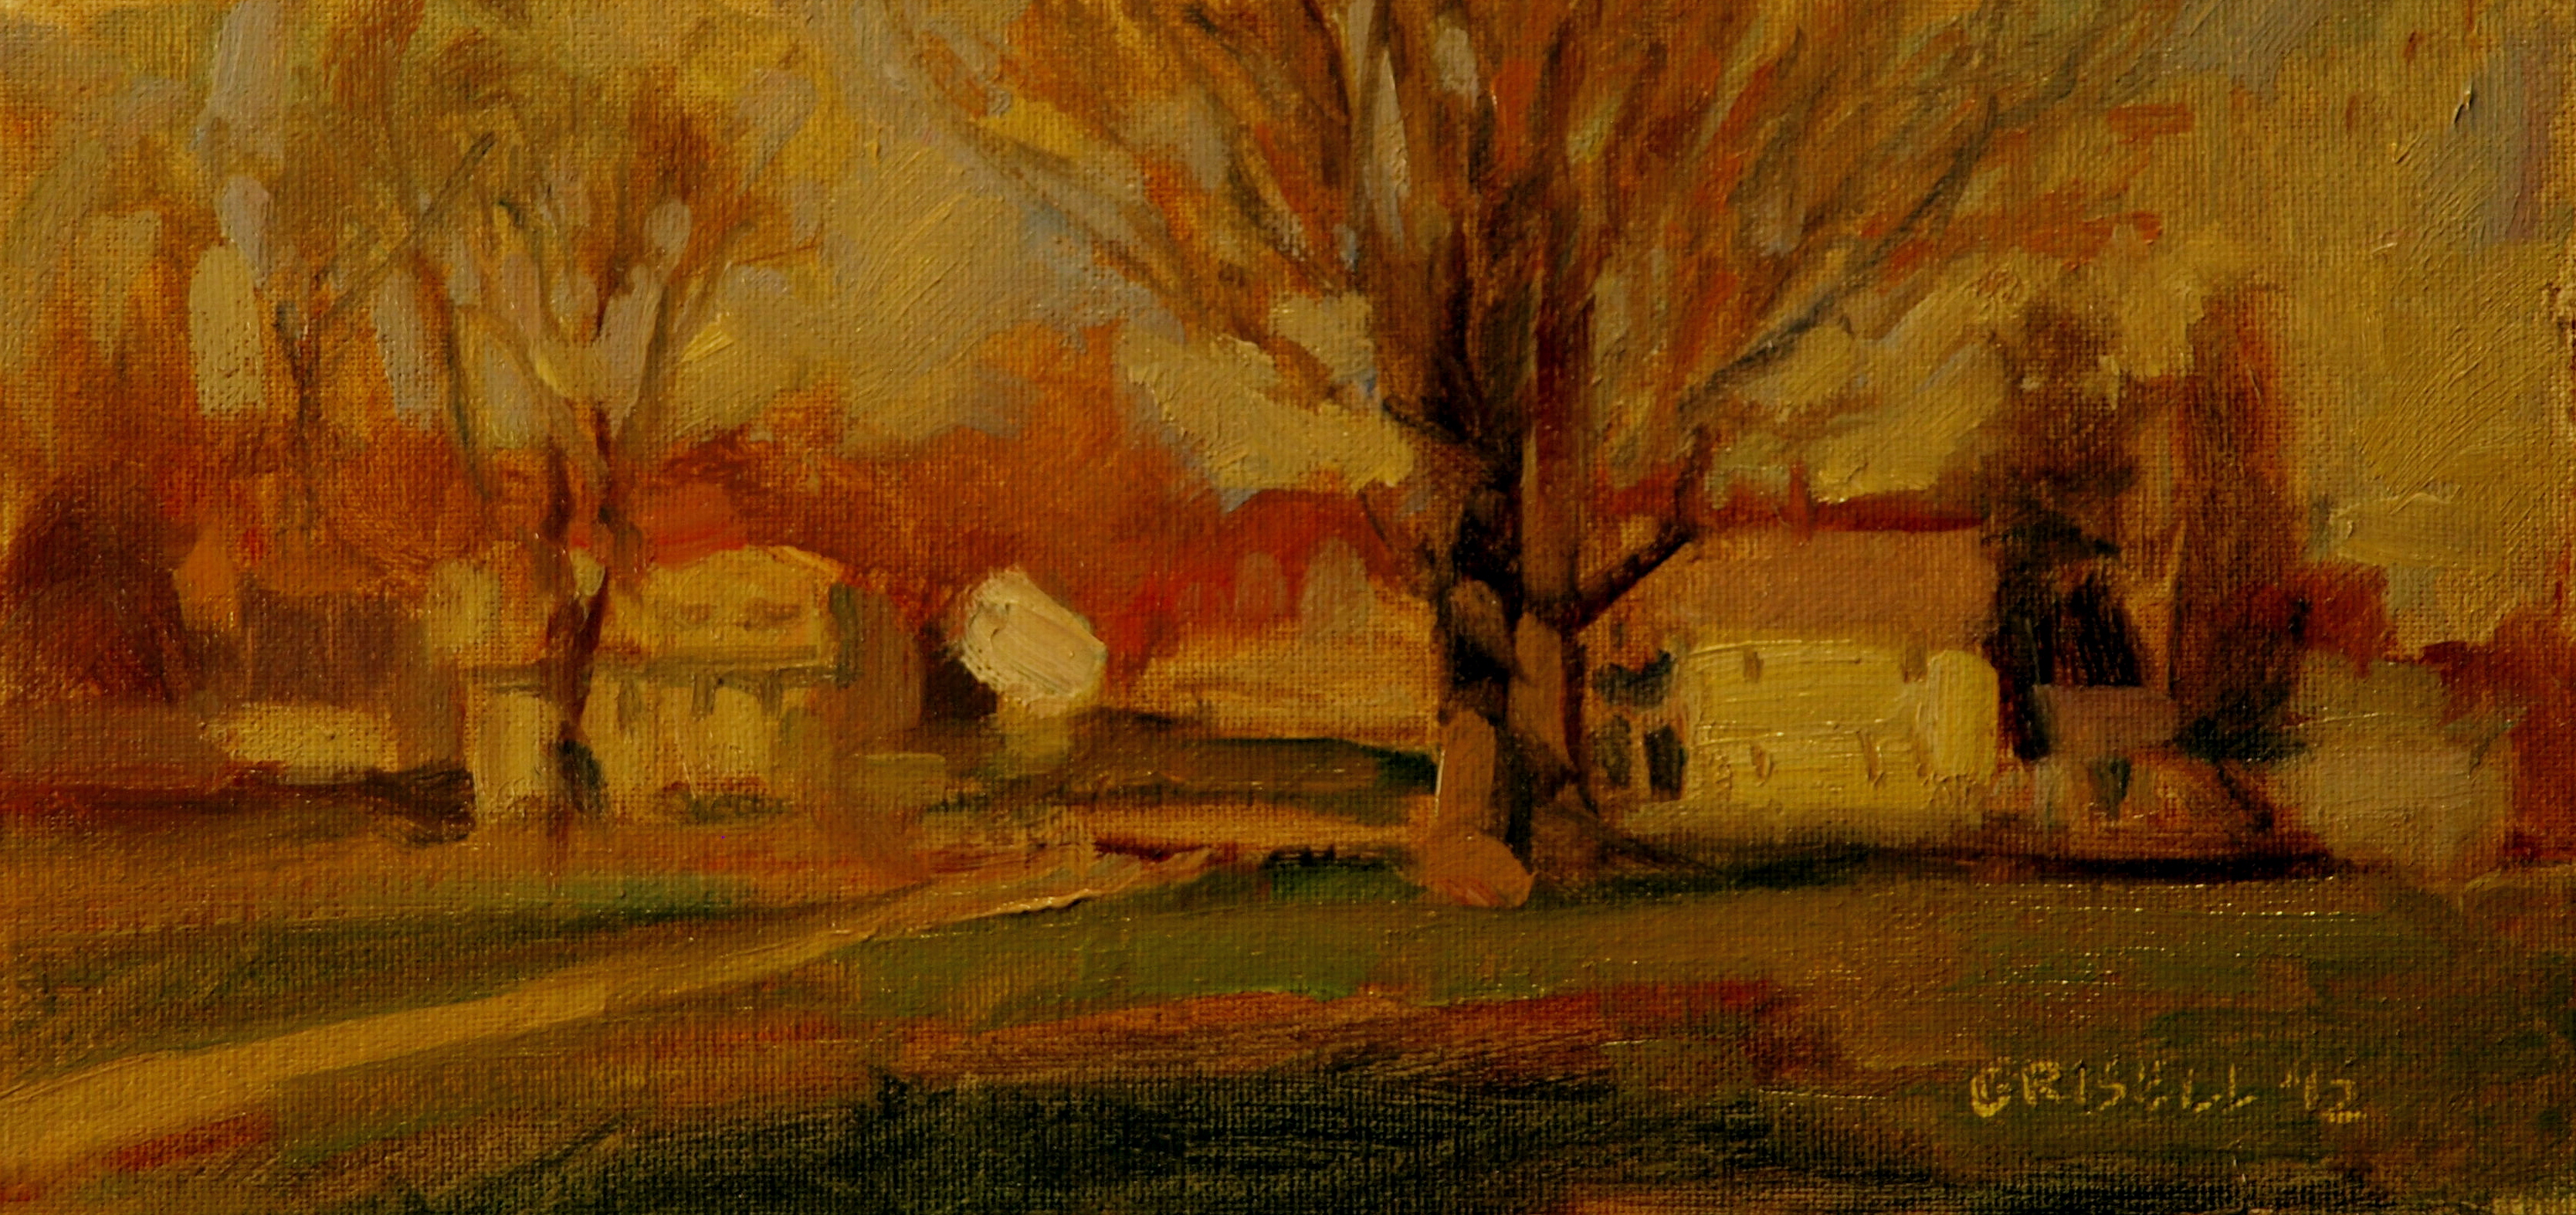 Almost Spring, Oil on Canvas on Panel, 6 x 12 Inches, by Susan Grisell, $150